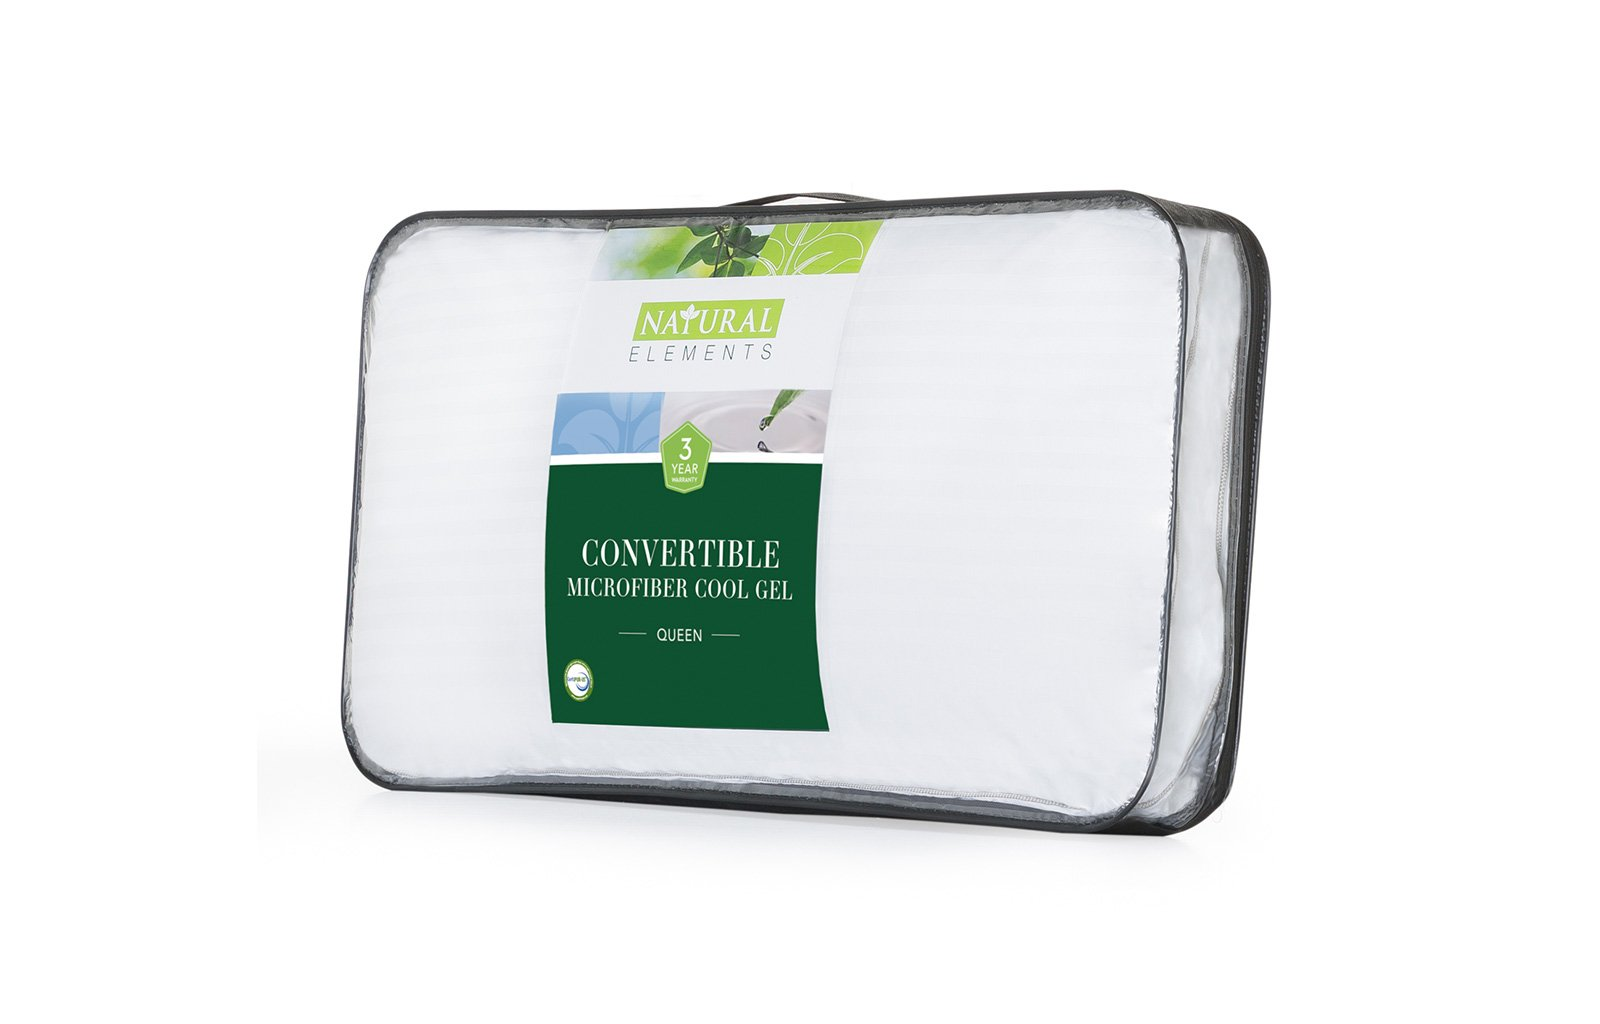 Convertible Microfiber Cool Gel Pillow